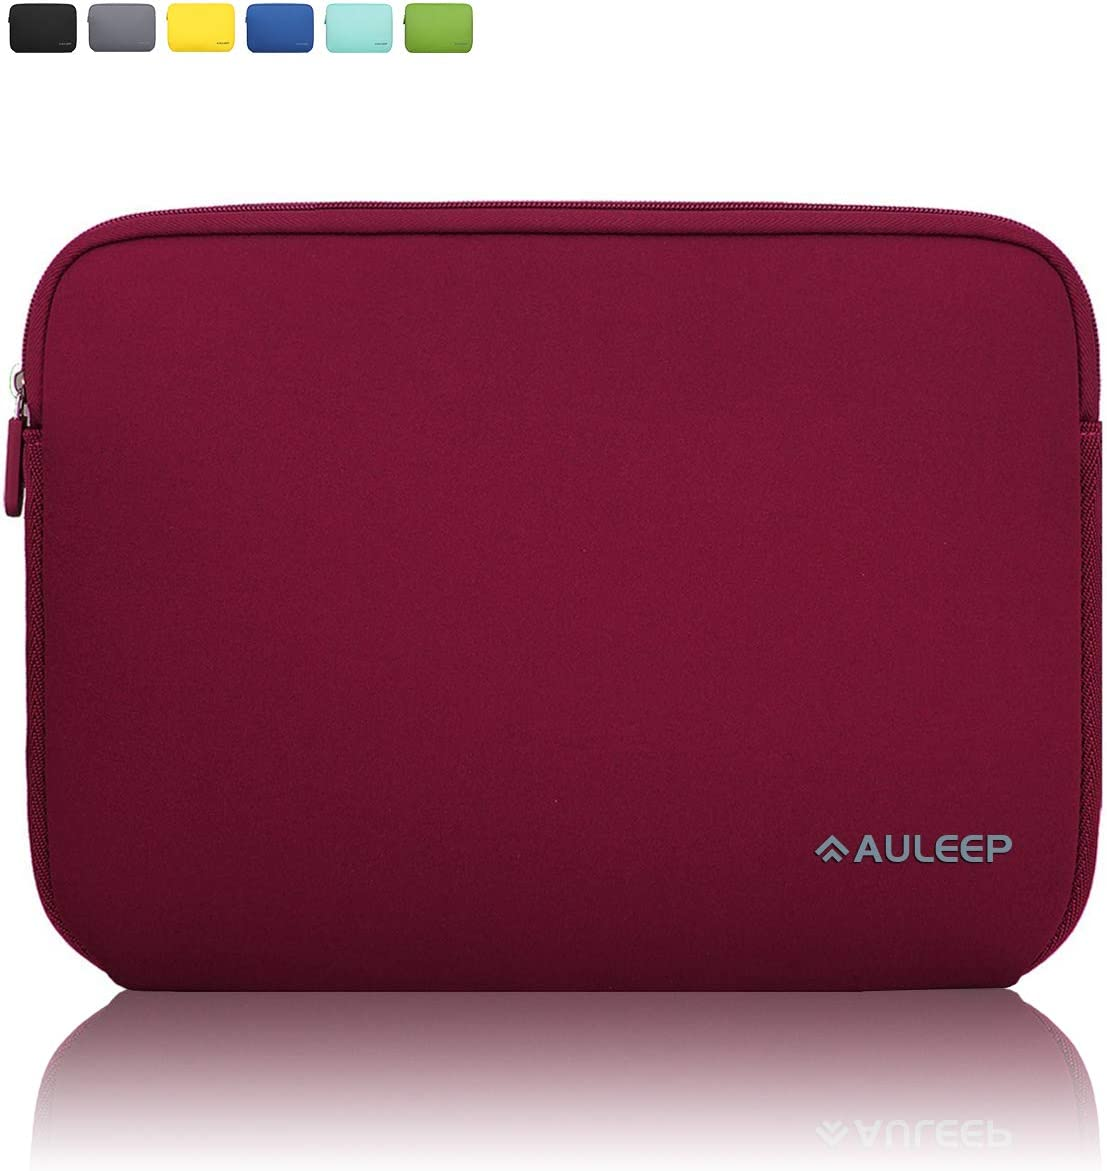 AULEEP 11-12 Inch Laptop Sleeves, Neoprene Notebook Computer Pocket Tablet Carrying Sleeve/Water-Resistant Compatible Laptop Sleeve for Acer/Asus/Dell/Lenovo/HP, Wine Red